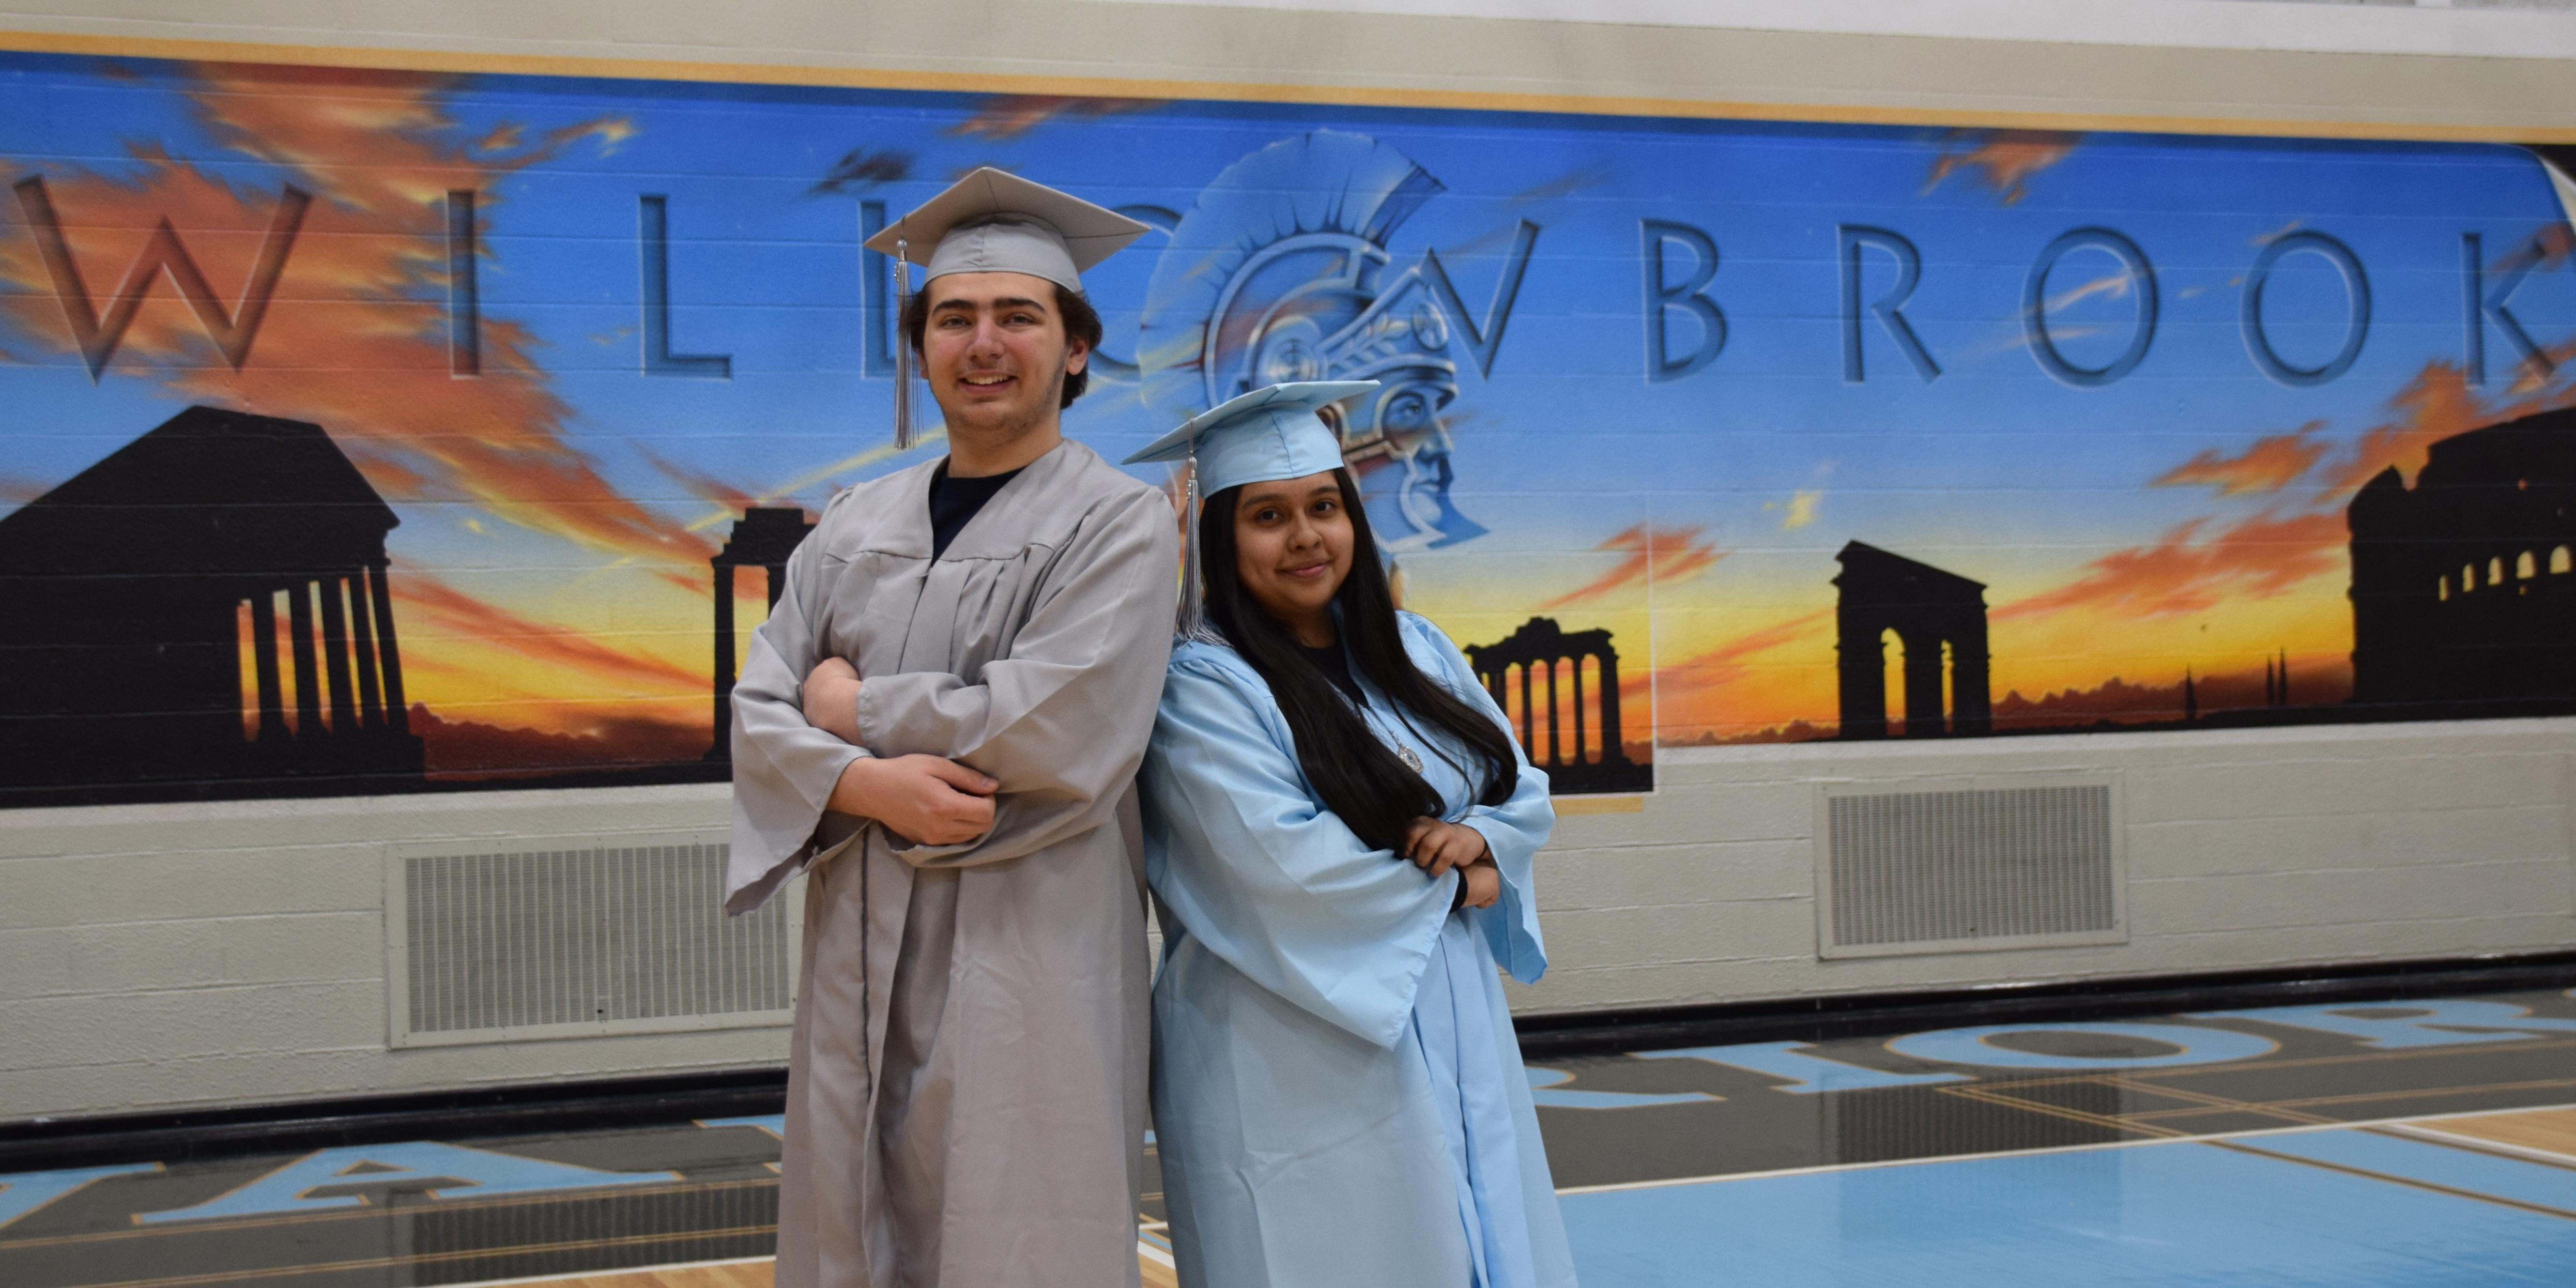 Meet Willowbrook's class of 2018 graduation speakers